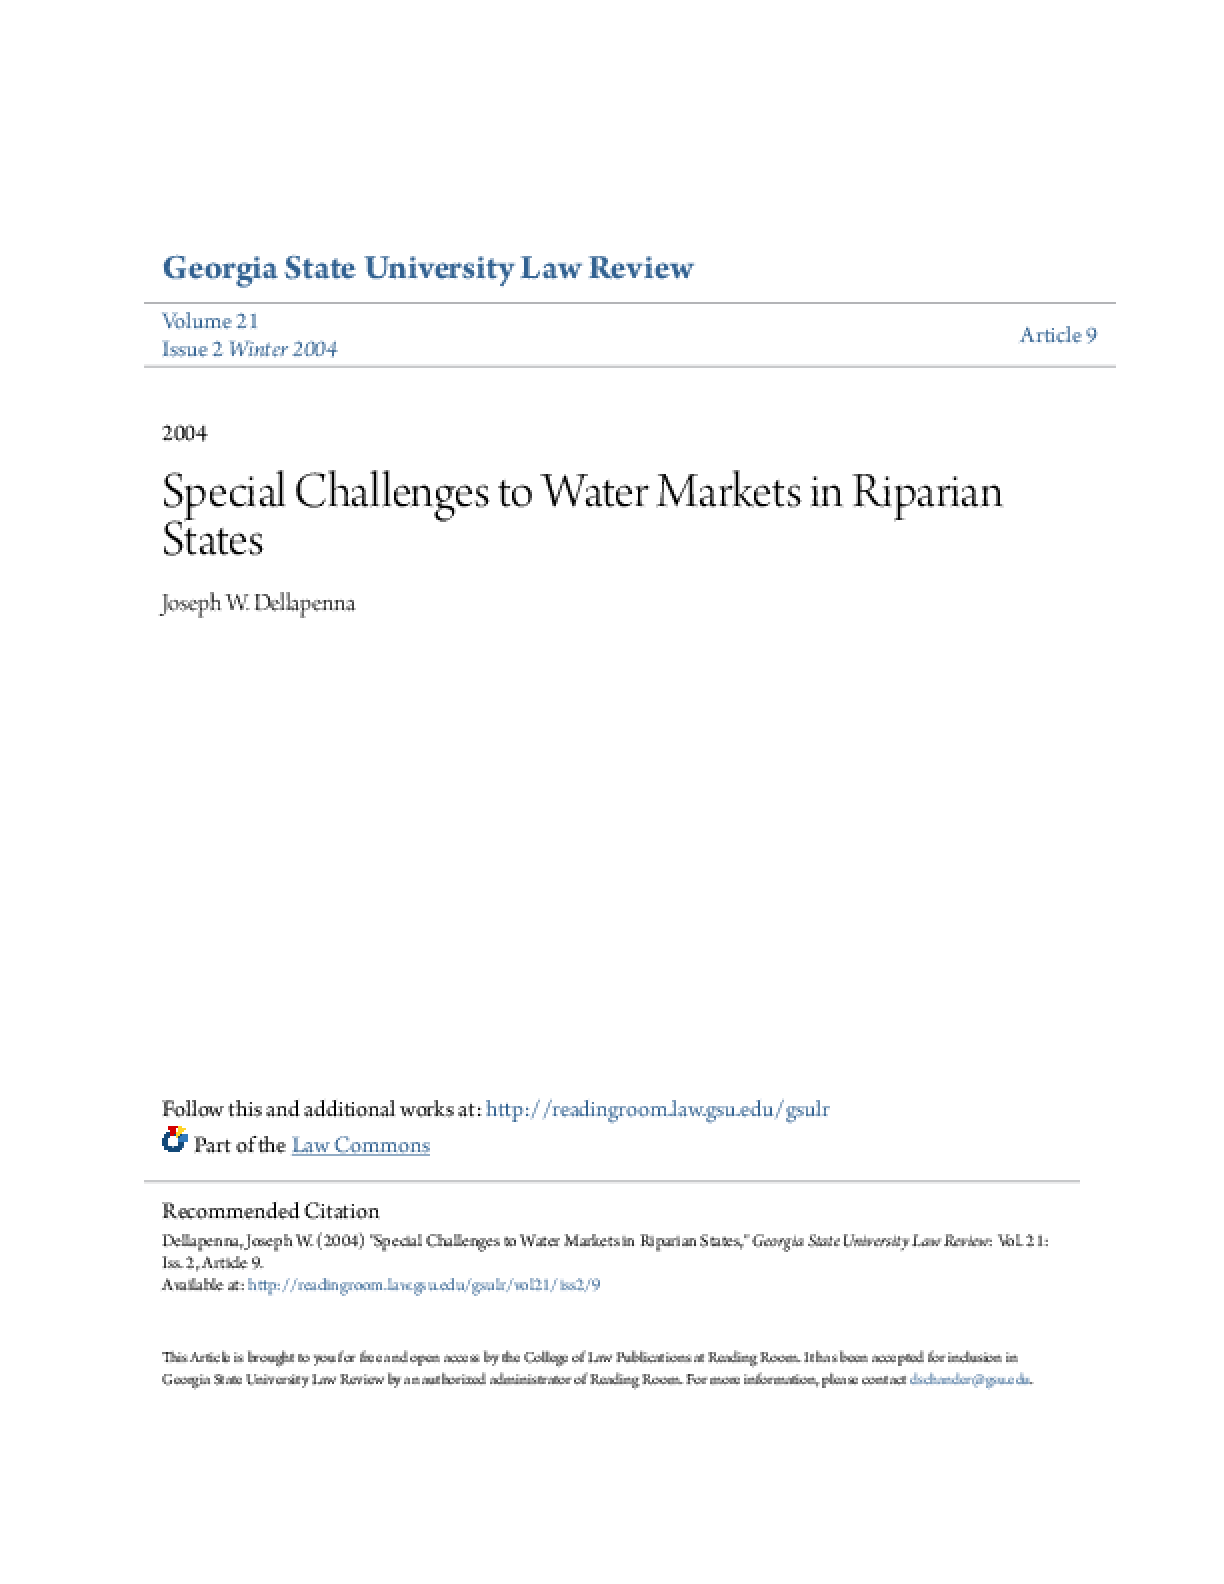 Special Challenges to Water Markets in Riparian States